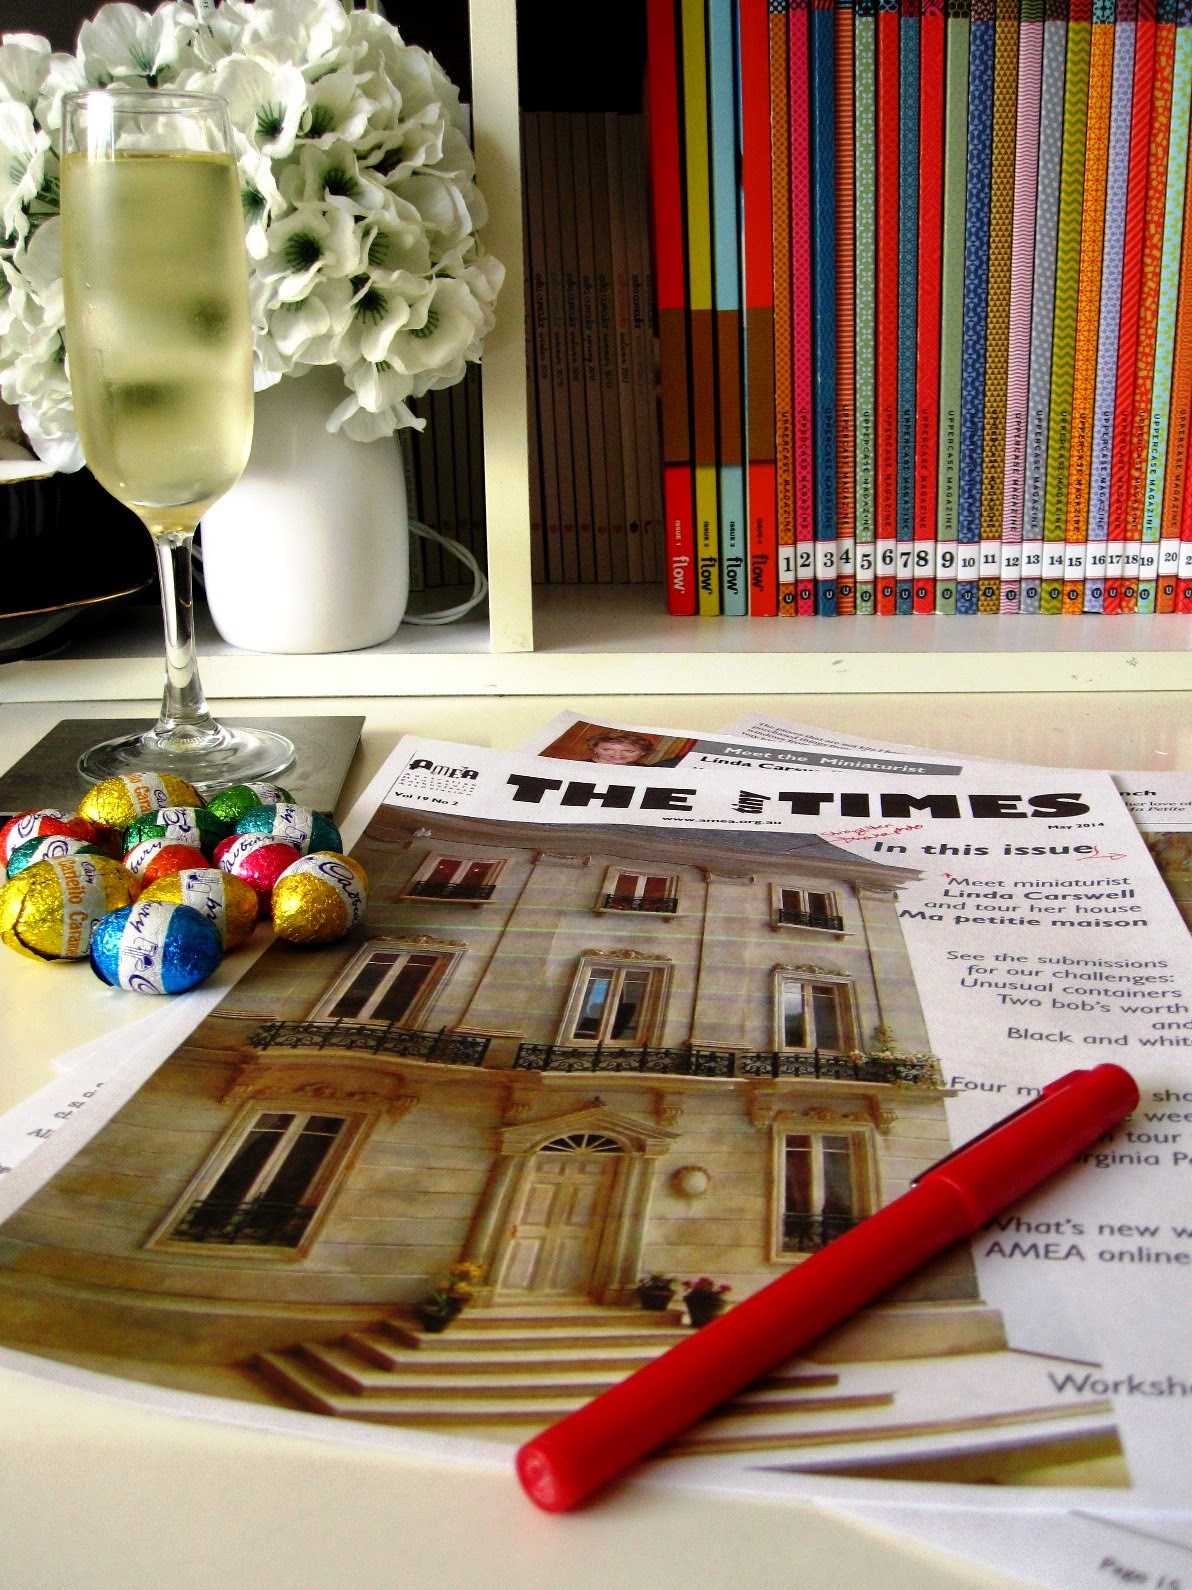 Printed out proofs of The tiny Times magazine on a desk, along with red pen, glass of sparkling wine and pile of small easter eggs.